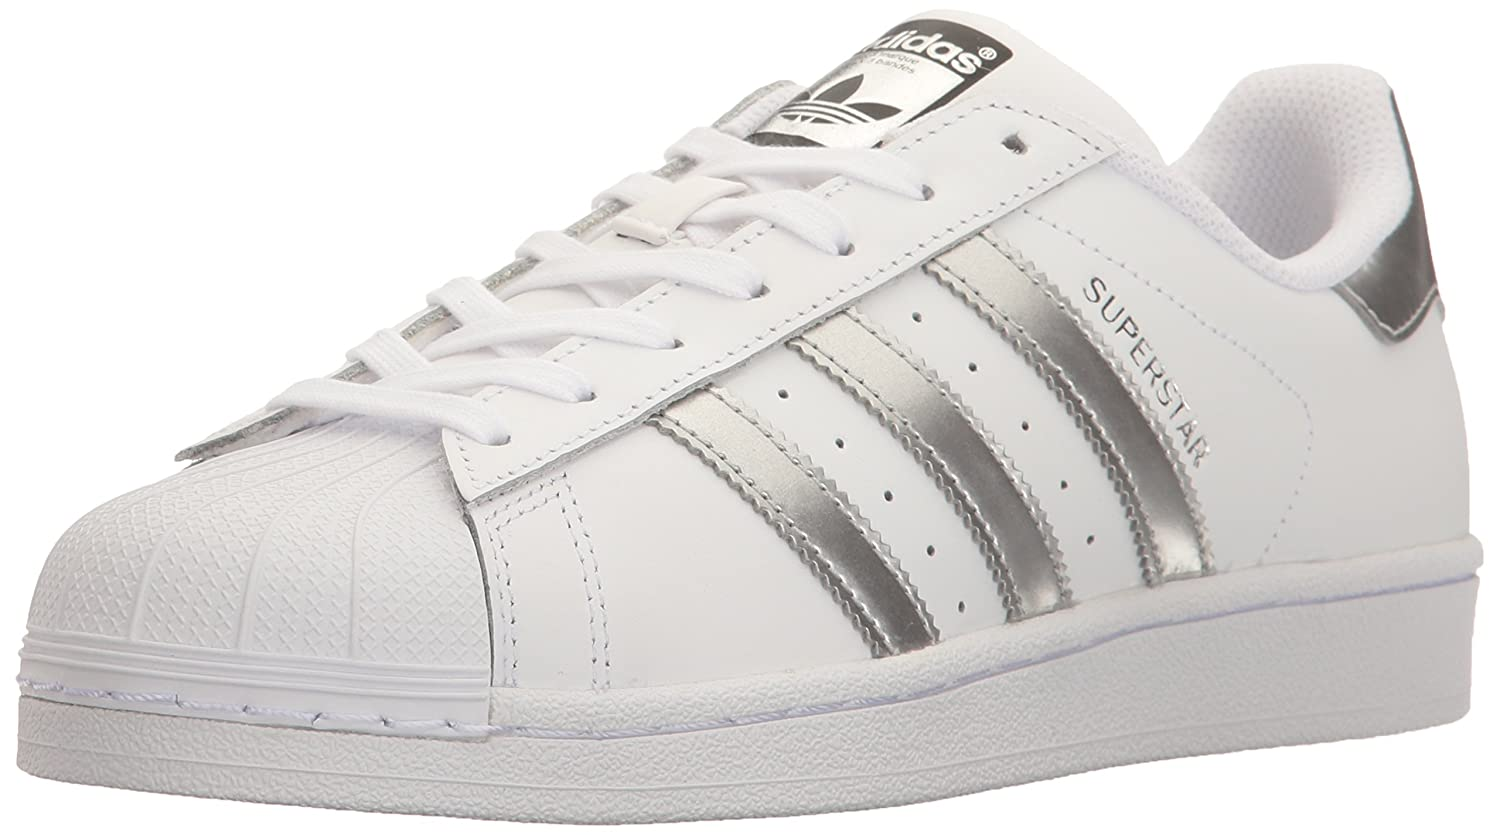 Adidas Women's Originals Superstar Shoes B01NH0OHIQ 13 B(M) US|White/Silver Metallic/Black